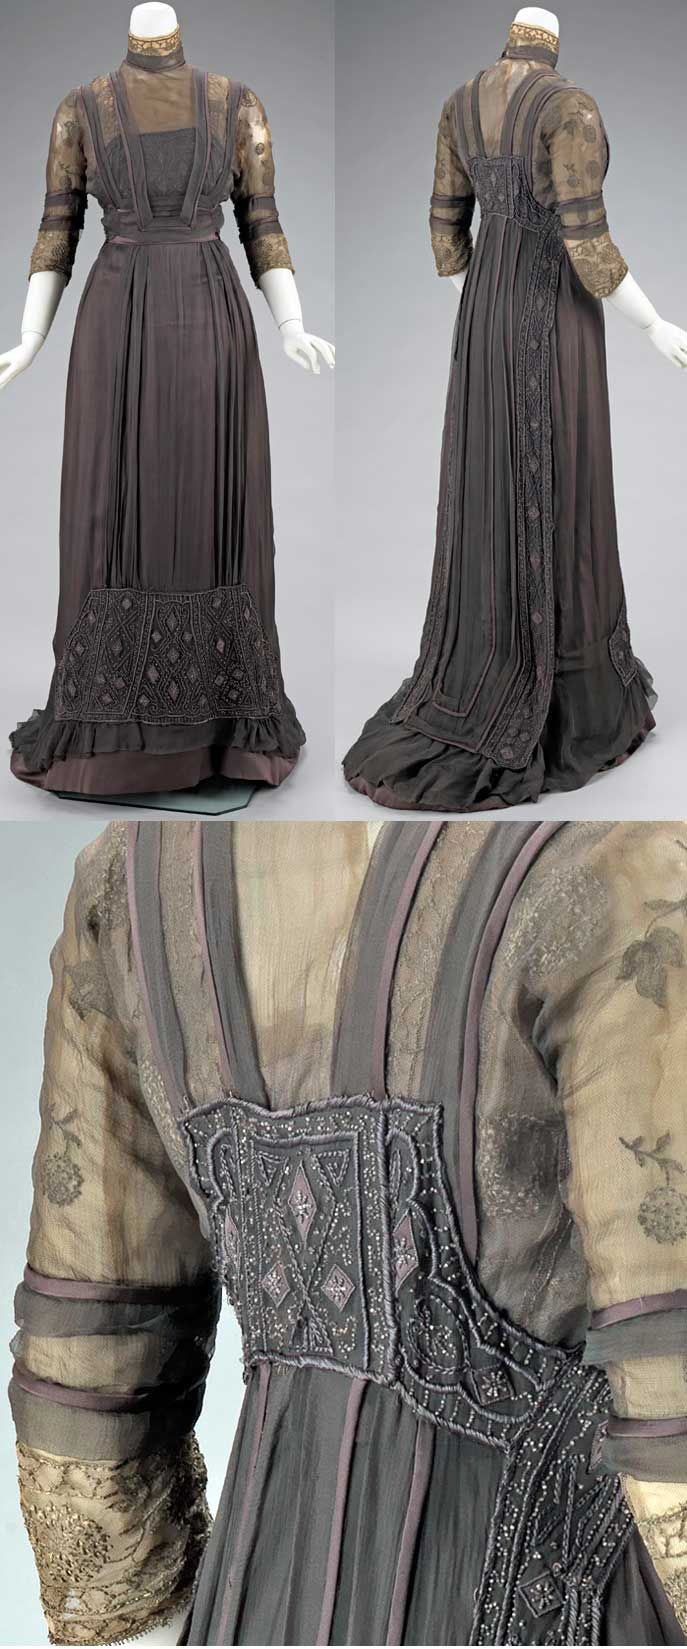 Dinner dress, House of Pacquin (Mme. Jeanne Pacquin), spring/summer 1909. Silk with metal trim.